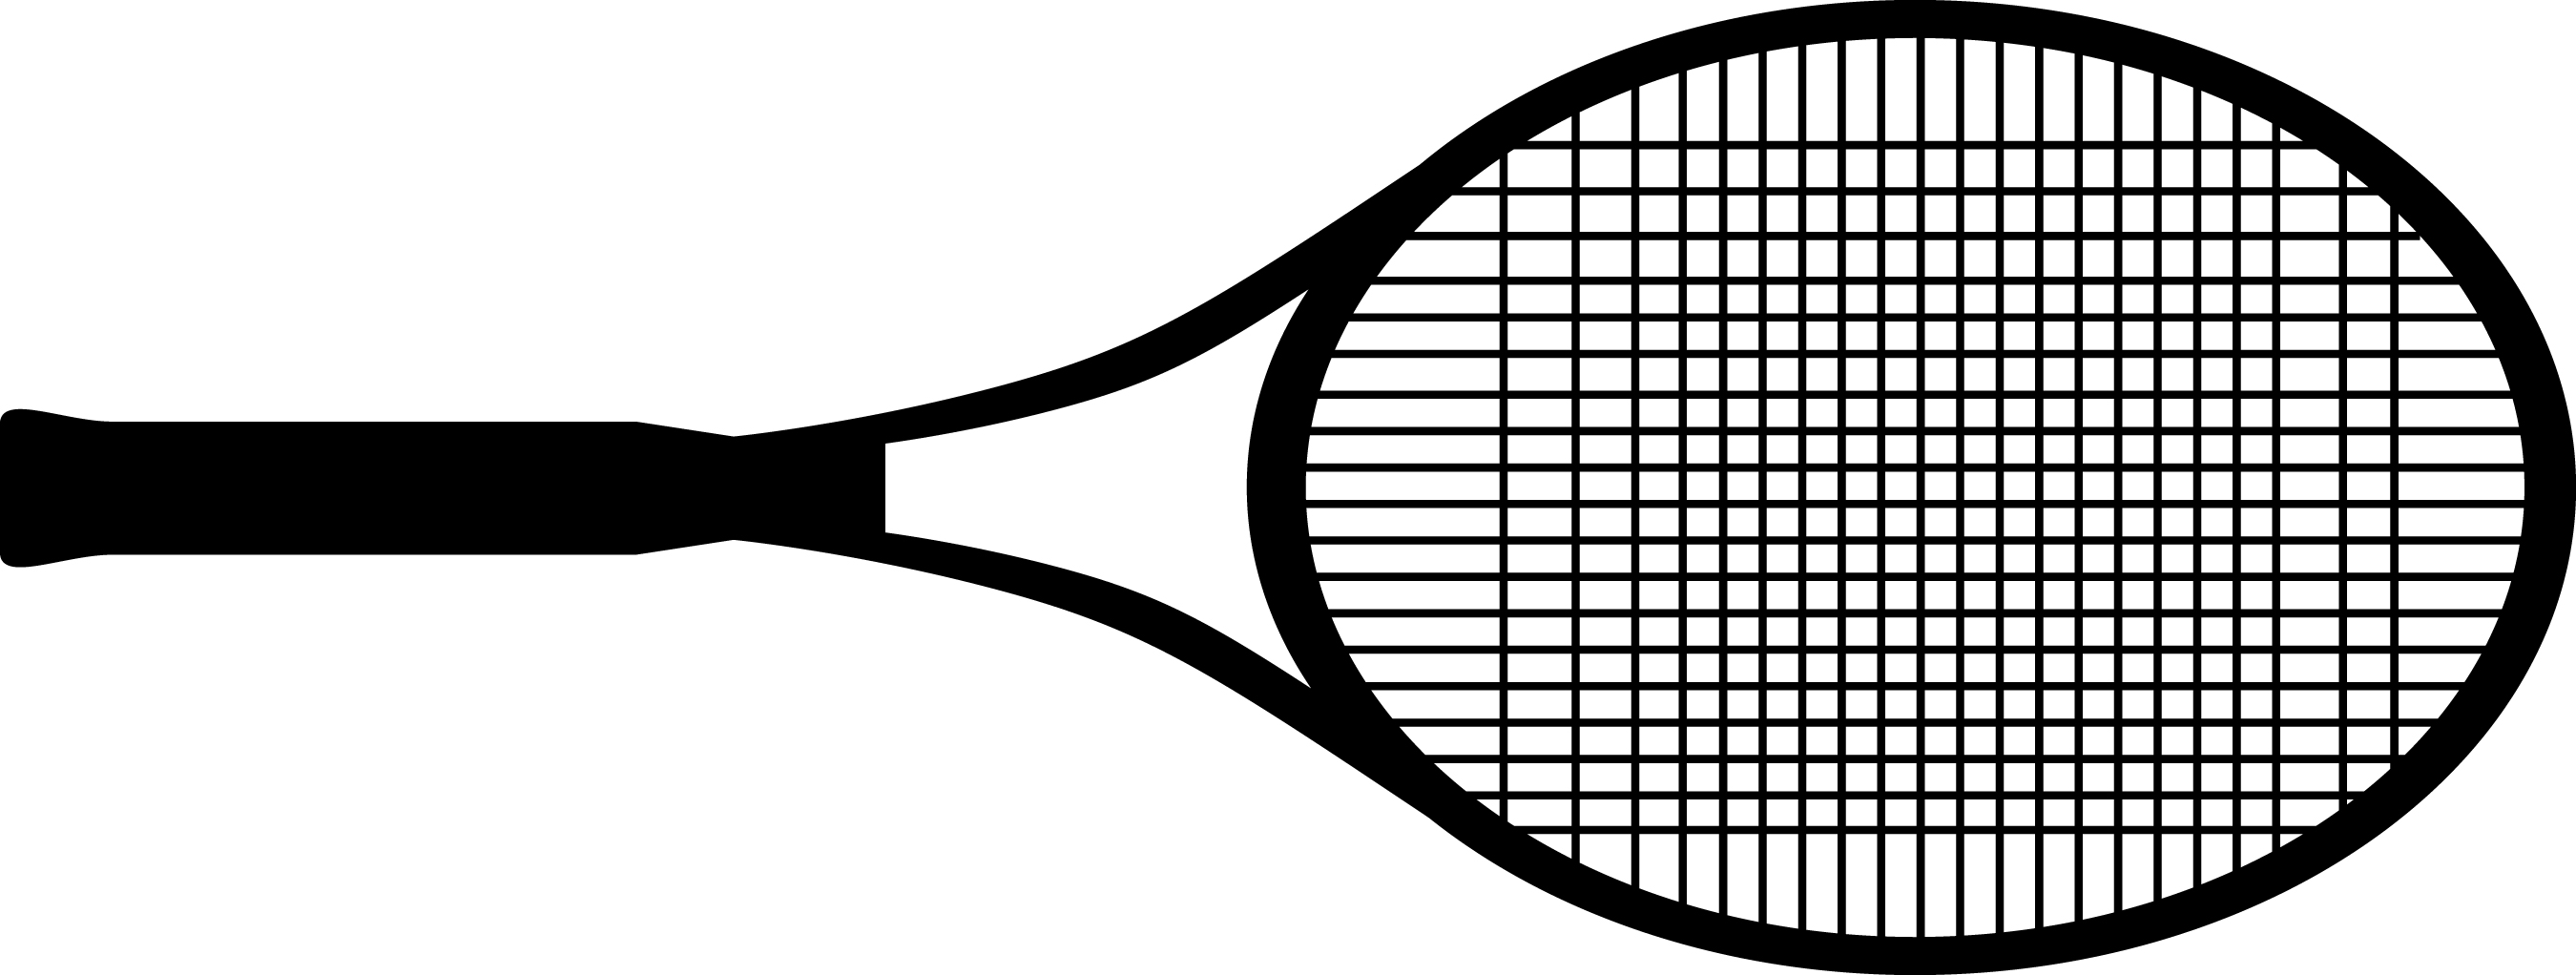 Tennis Racket Silhouette images pictures - NearPics. Pictures Of Tennis Rackets. head_tennis_racquet_microgel_. Tennis Racquet Clipart